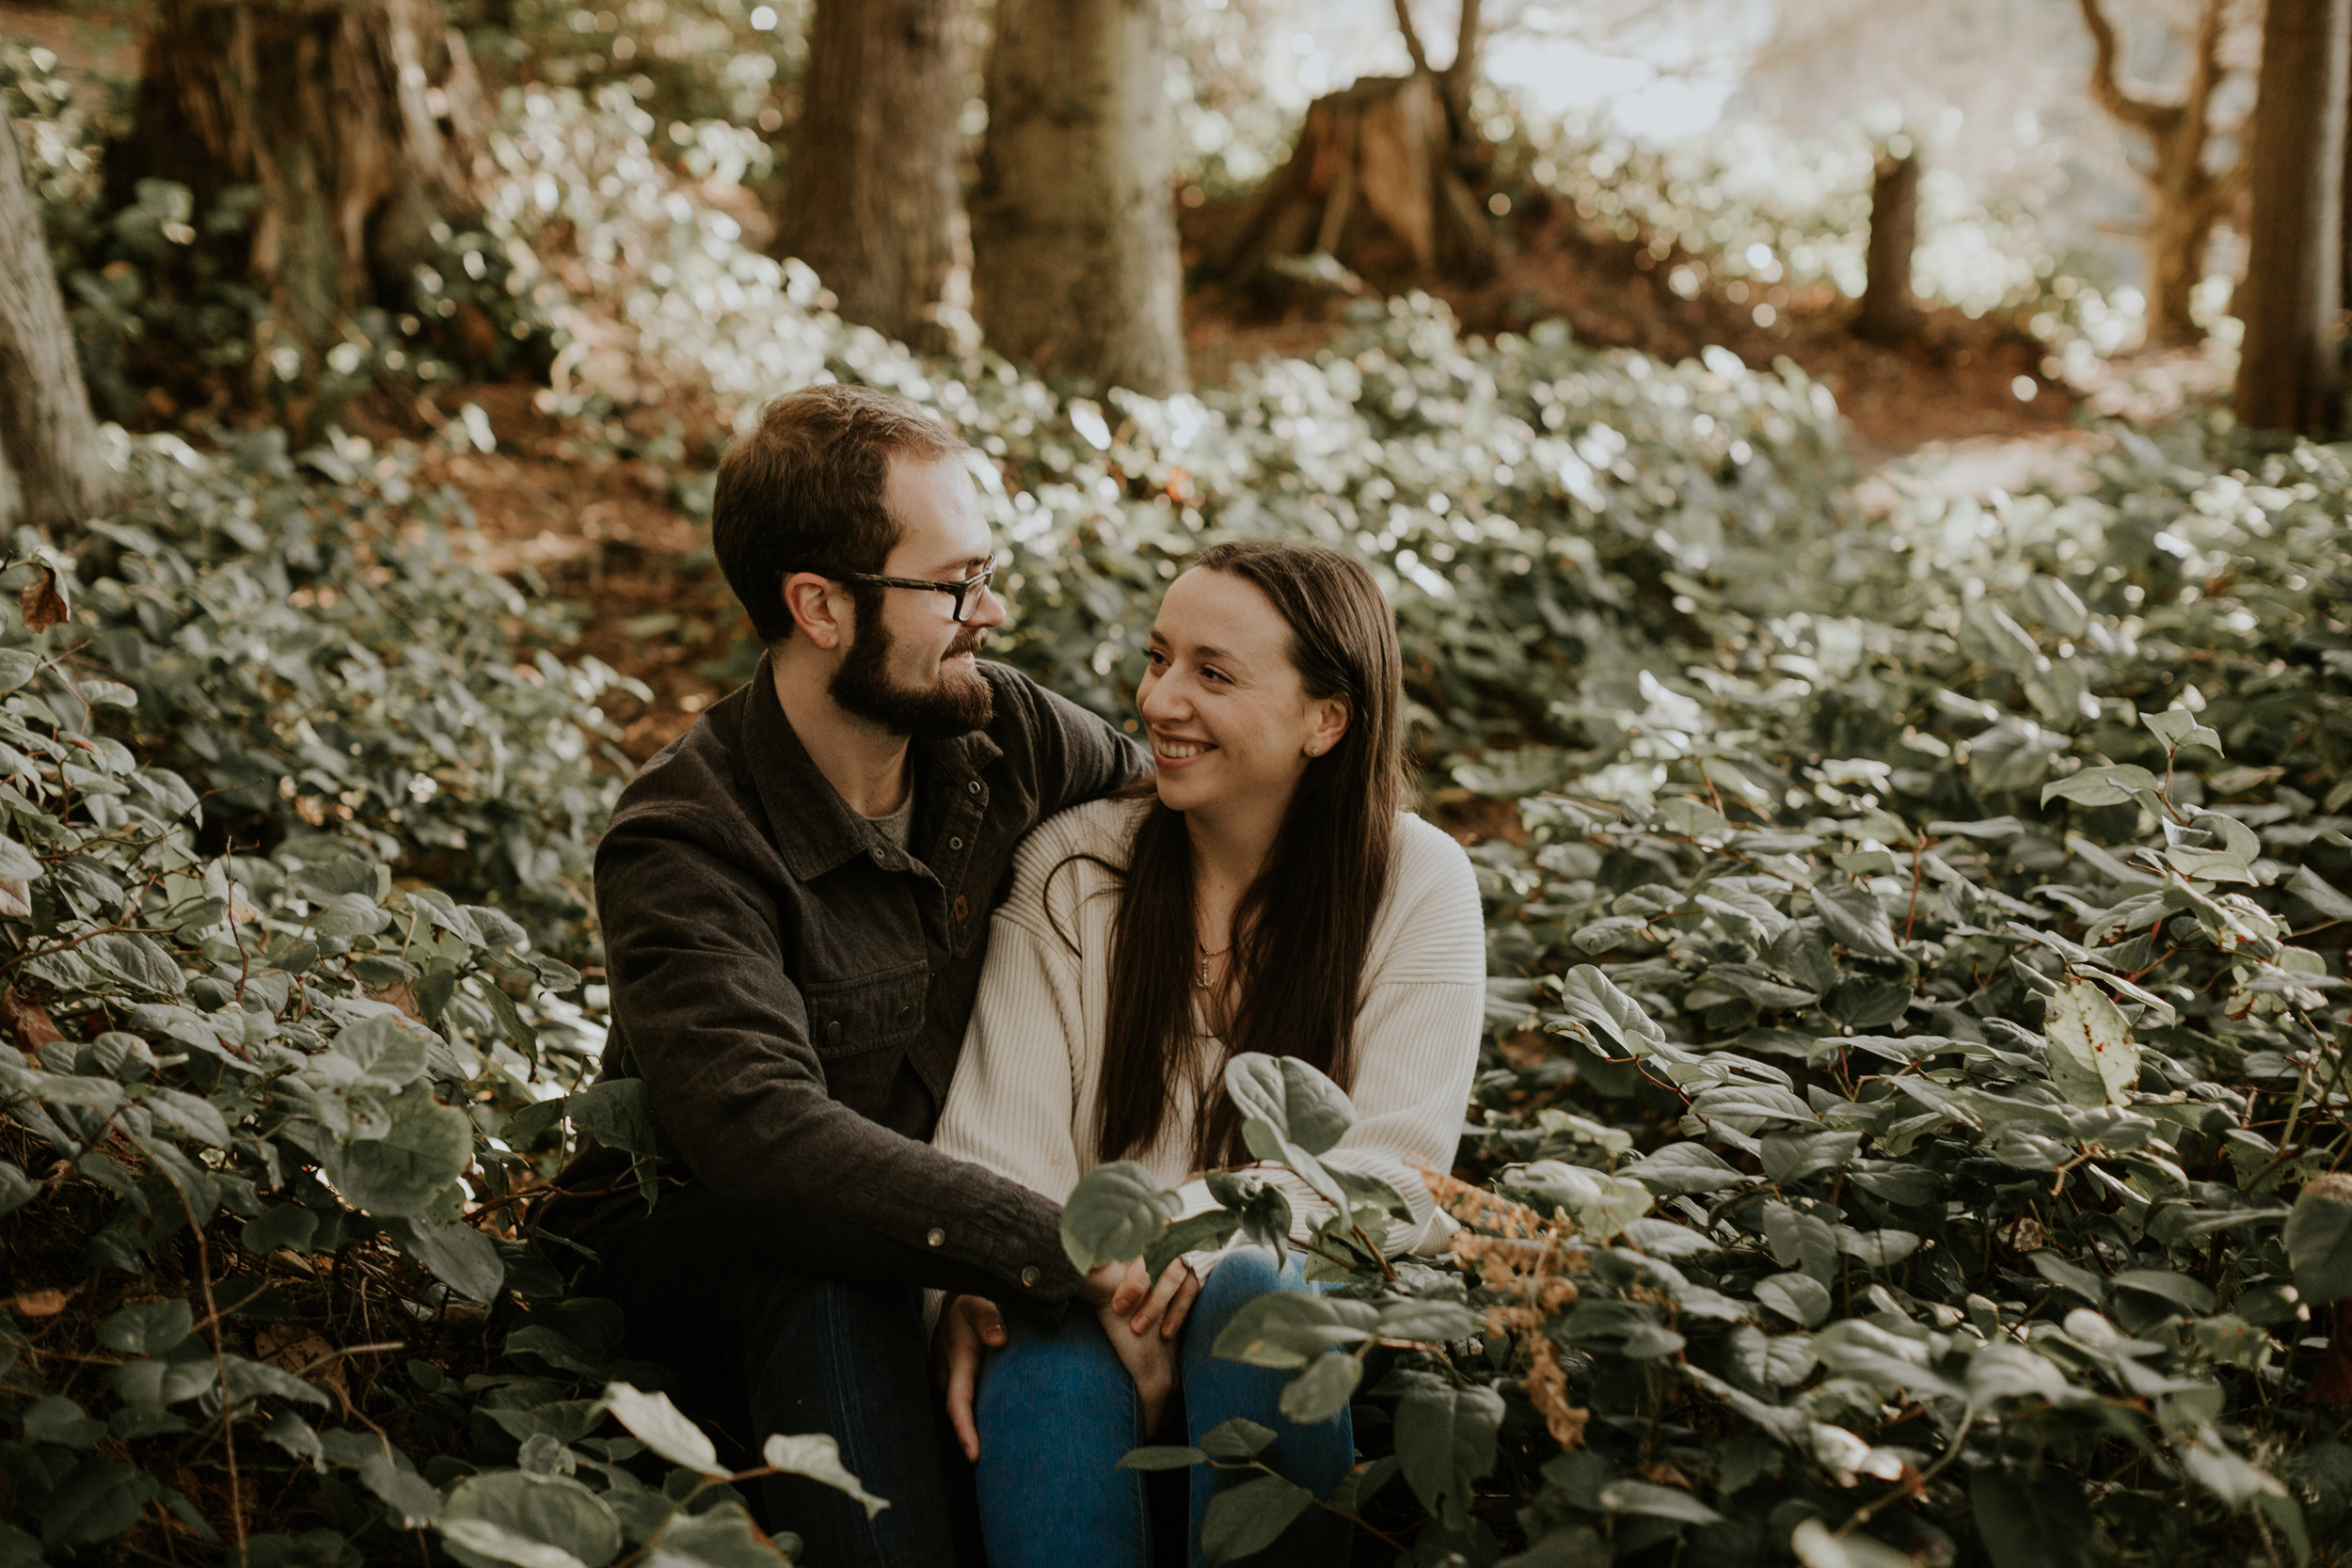 PNW-Olympic National Park-Salt Creek-engagement-Portrait-Port-Angeles-Washington-elopement-photographer-kayla-dawn-photography-kayladawnphoto-wedding-anniversary-photoshoot-olympic-peninsula-111.jpg